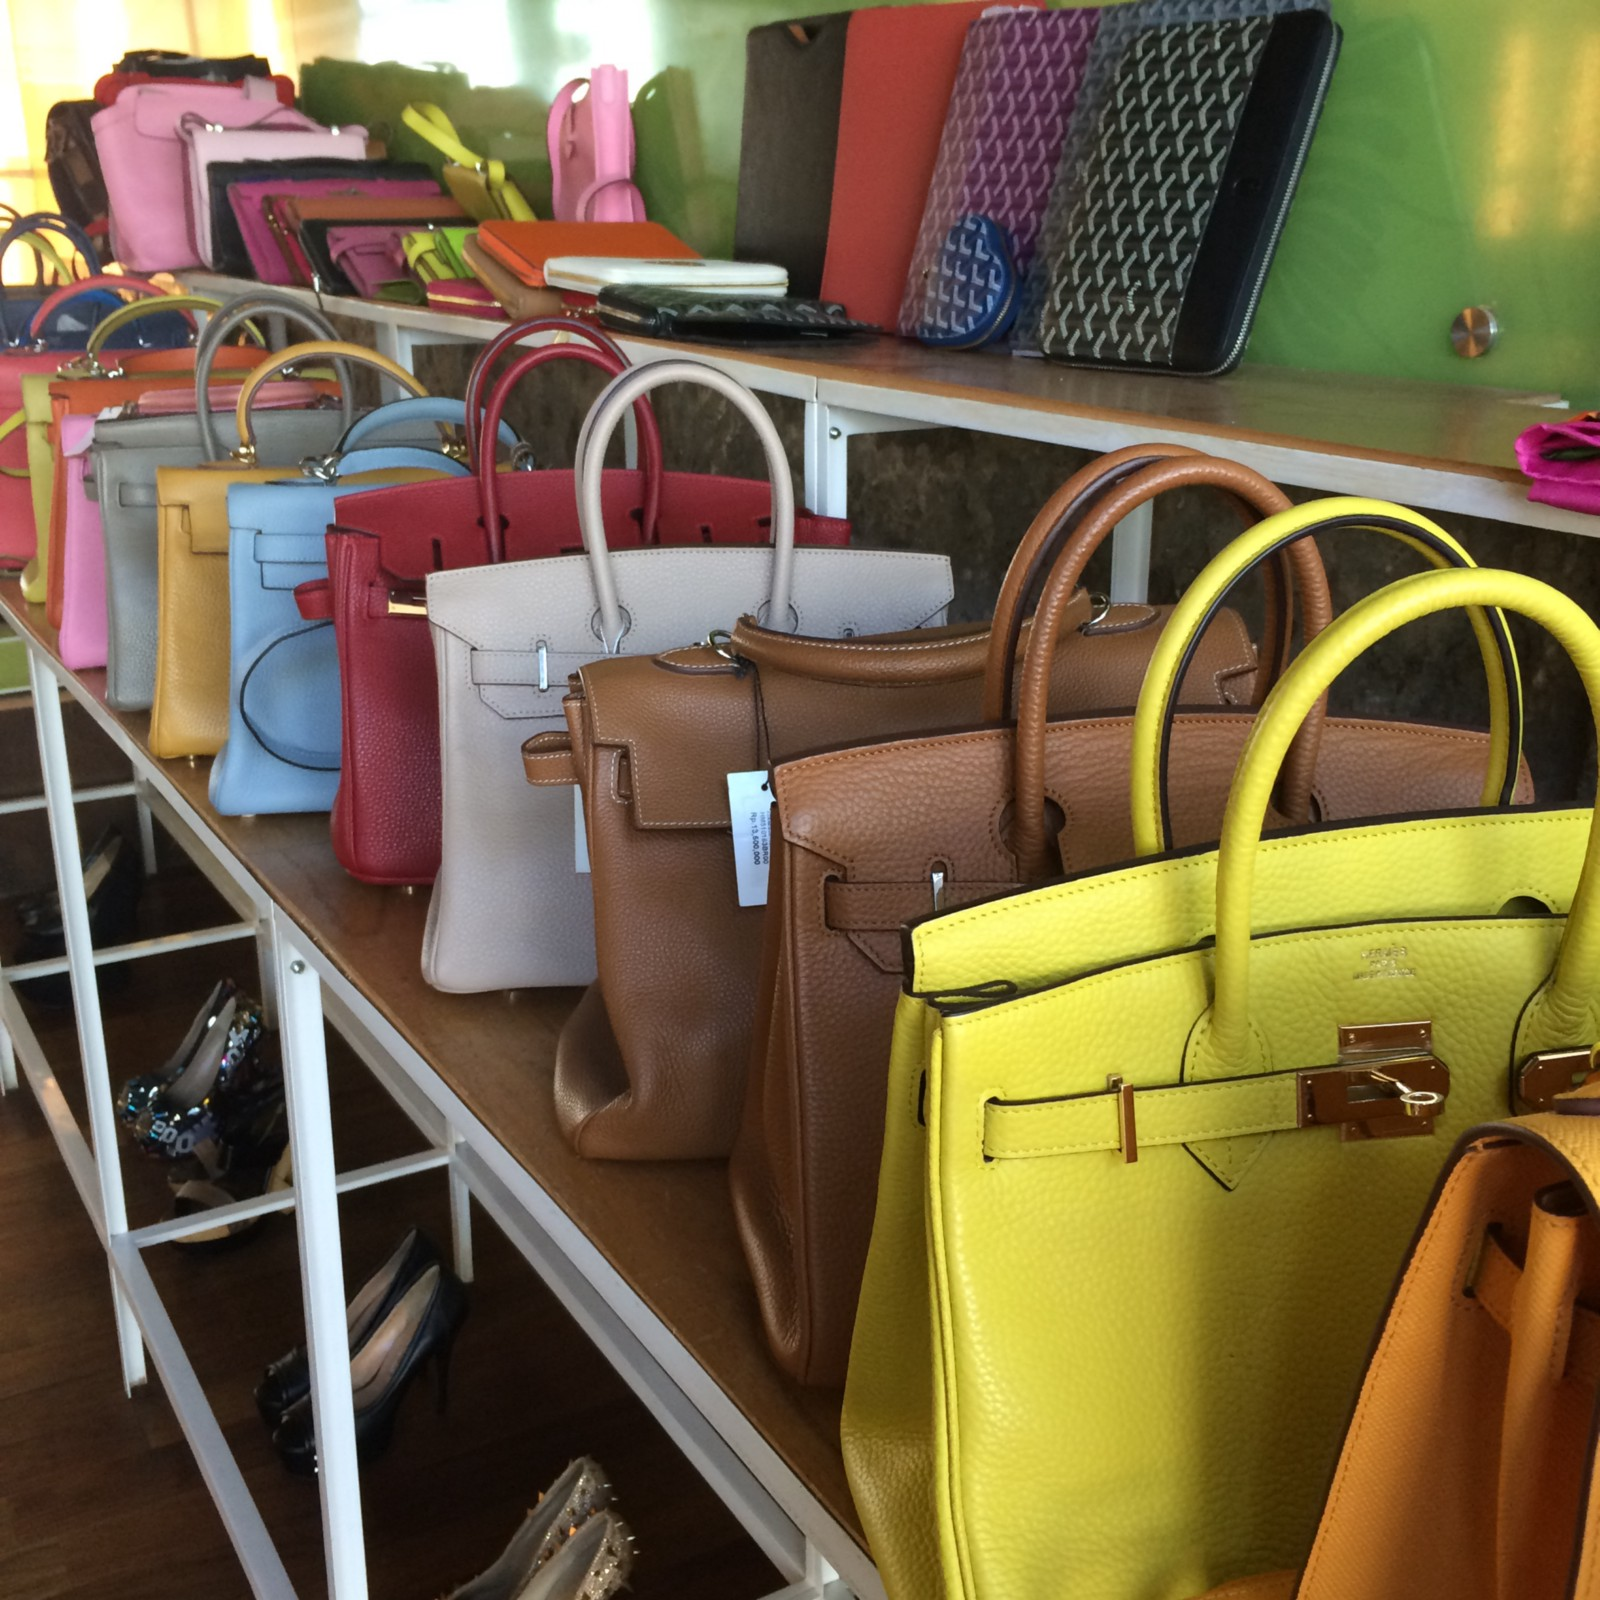 76c47a2e2a97 The Truth About Counterfeit Luxury Handbags – Becca Risa Luna – Medium